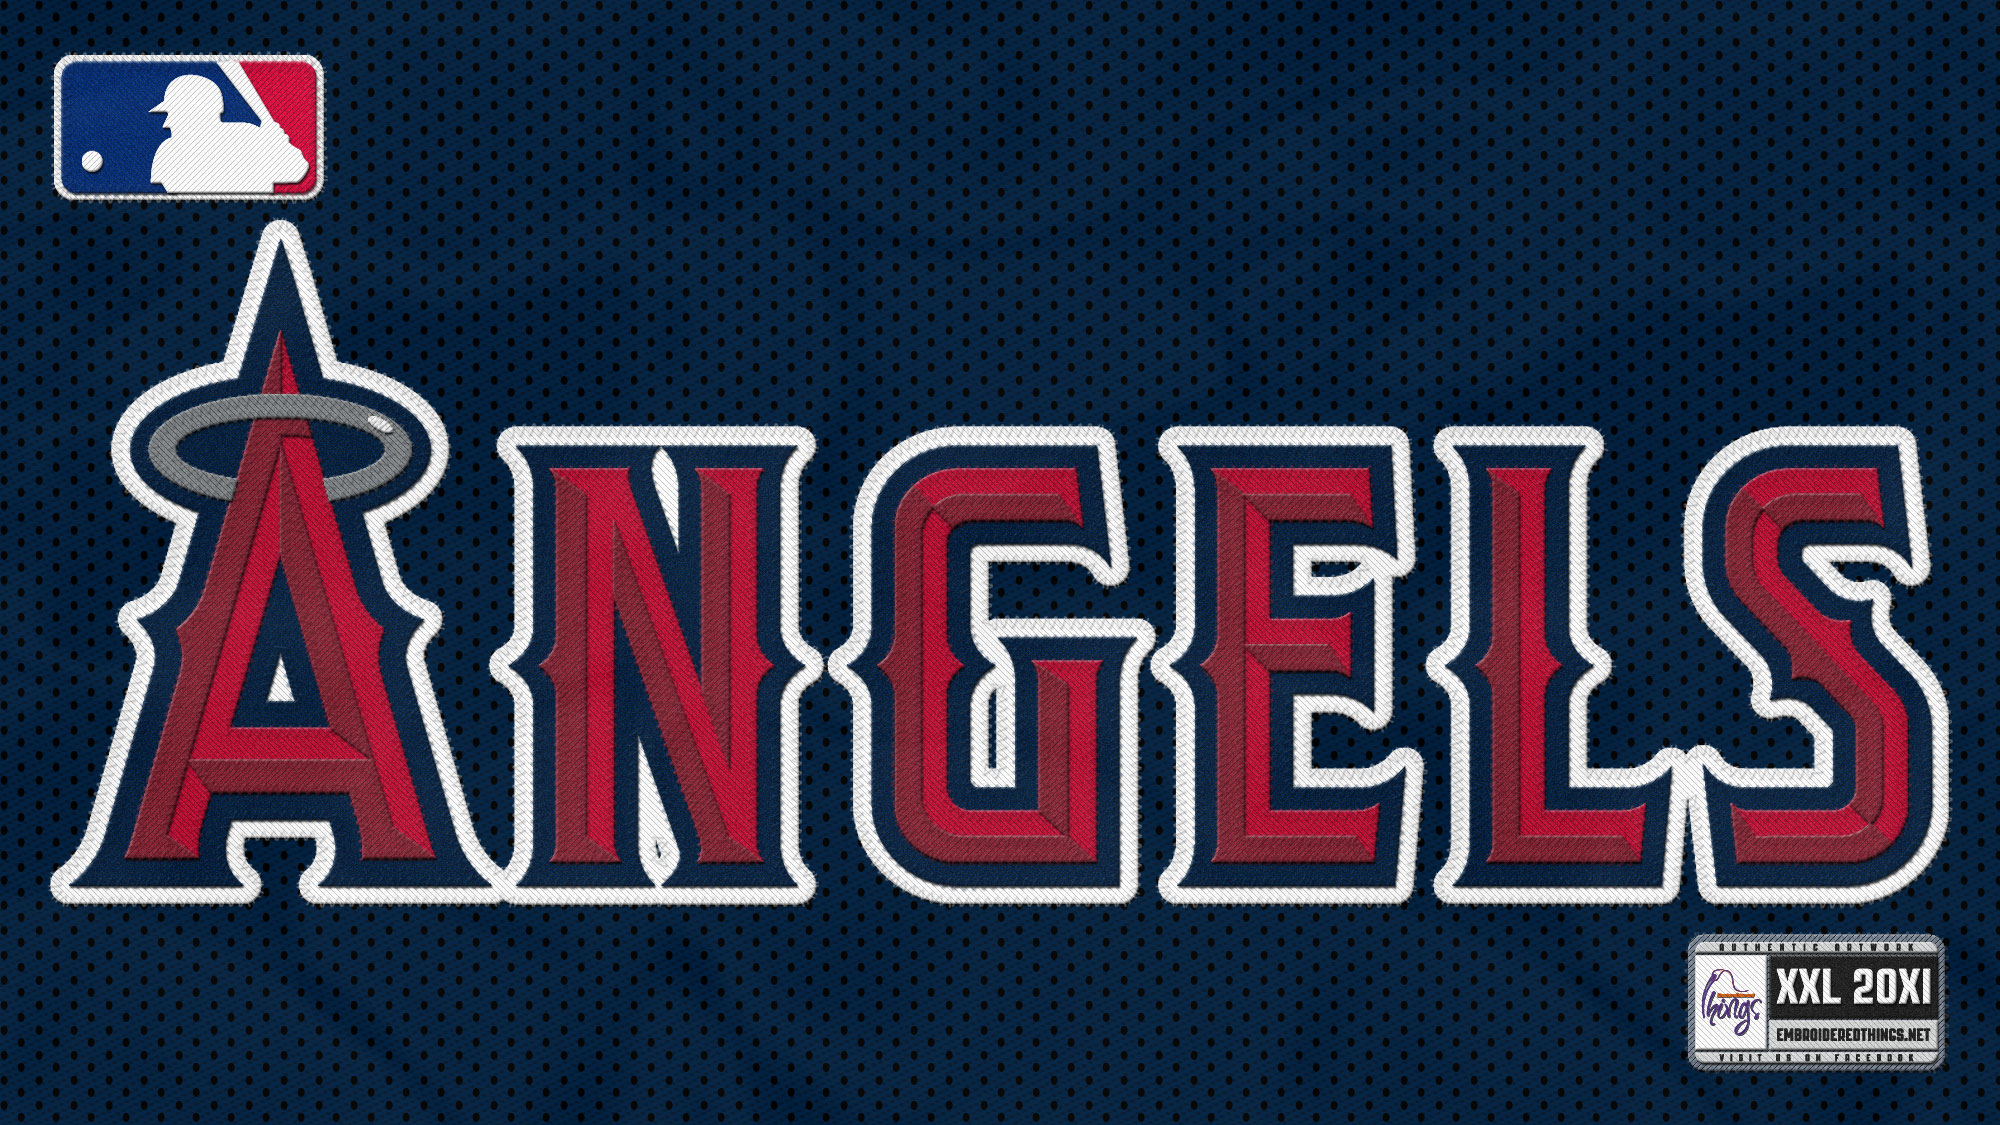 Angeles Angels of Anaheim wallpapers Los Angeles Angels of Anaheim 2000x1125